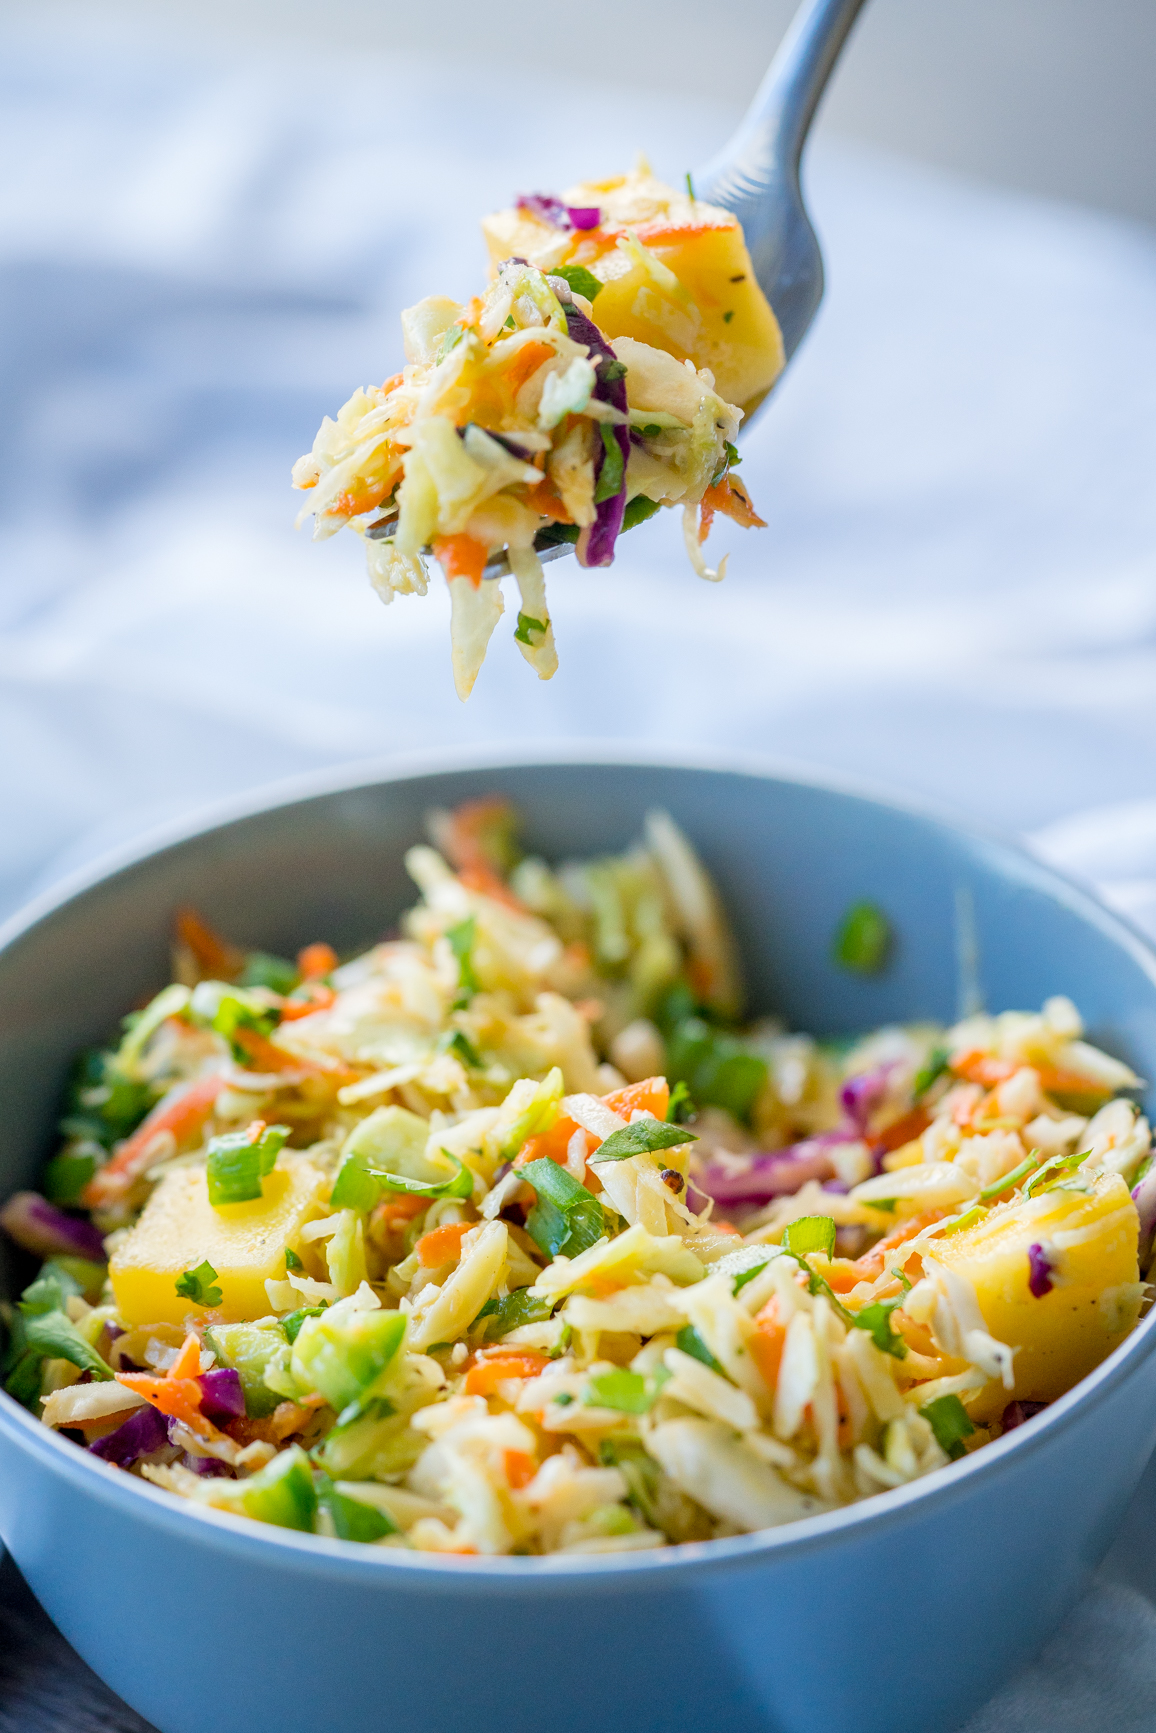 Carribean Coleslaw 12